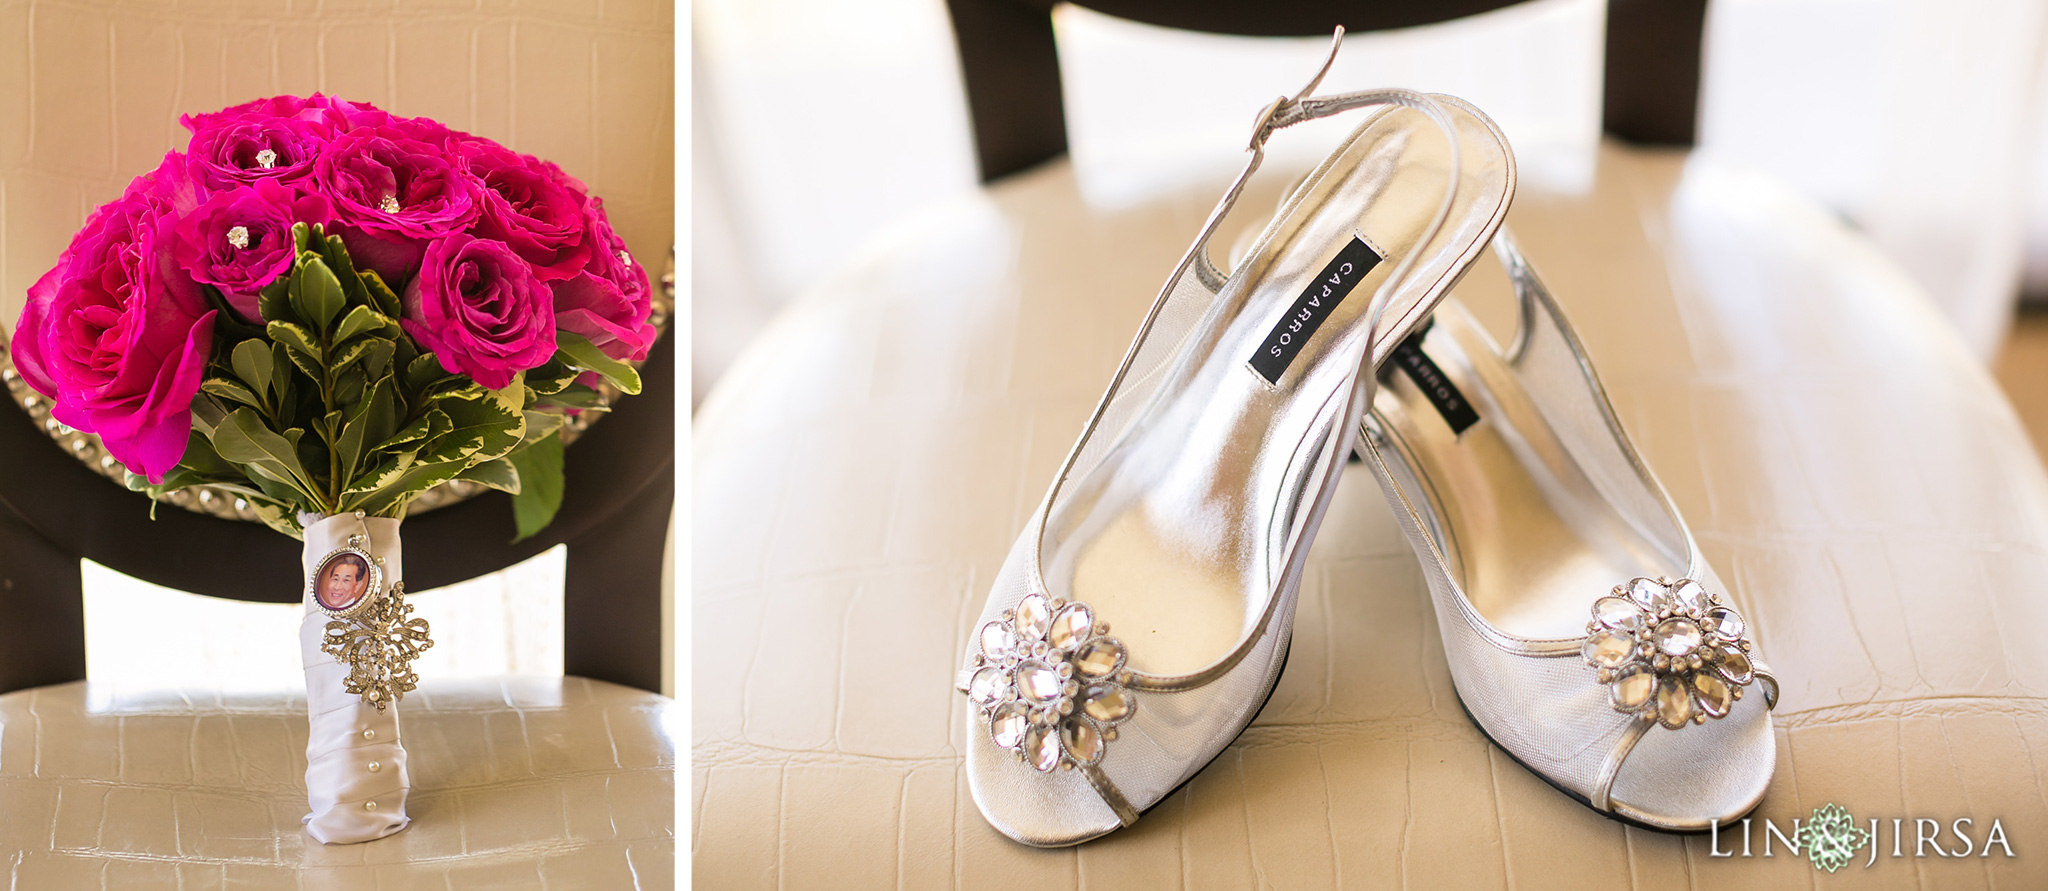 08-universal-city-sheraton-wedding-photography